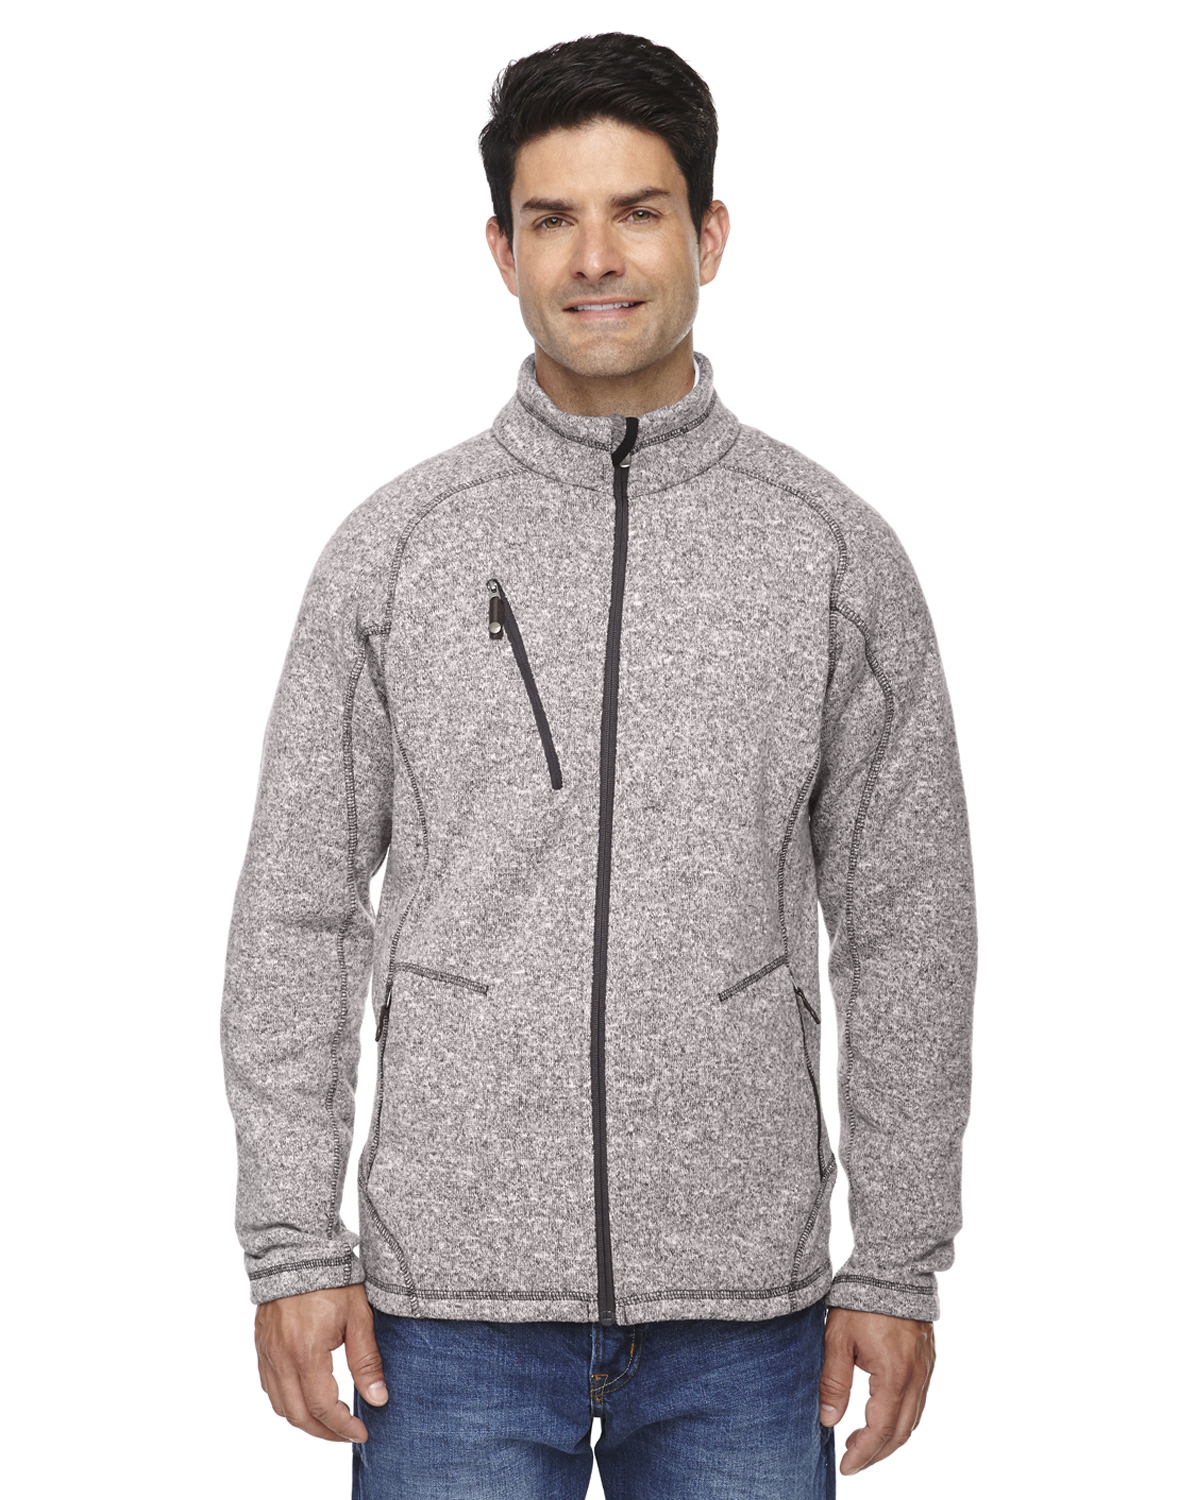 Ash City - 88669, North End Sport Red Men's Peak Sweater Fleece Jacket - Logo Masters International